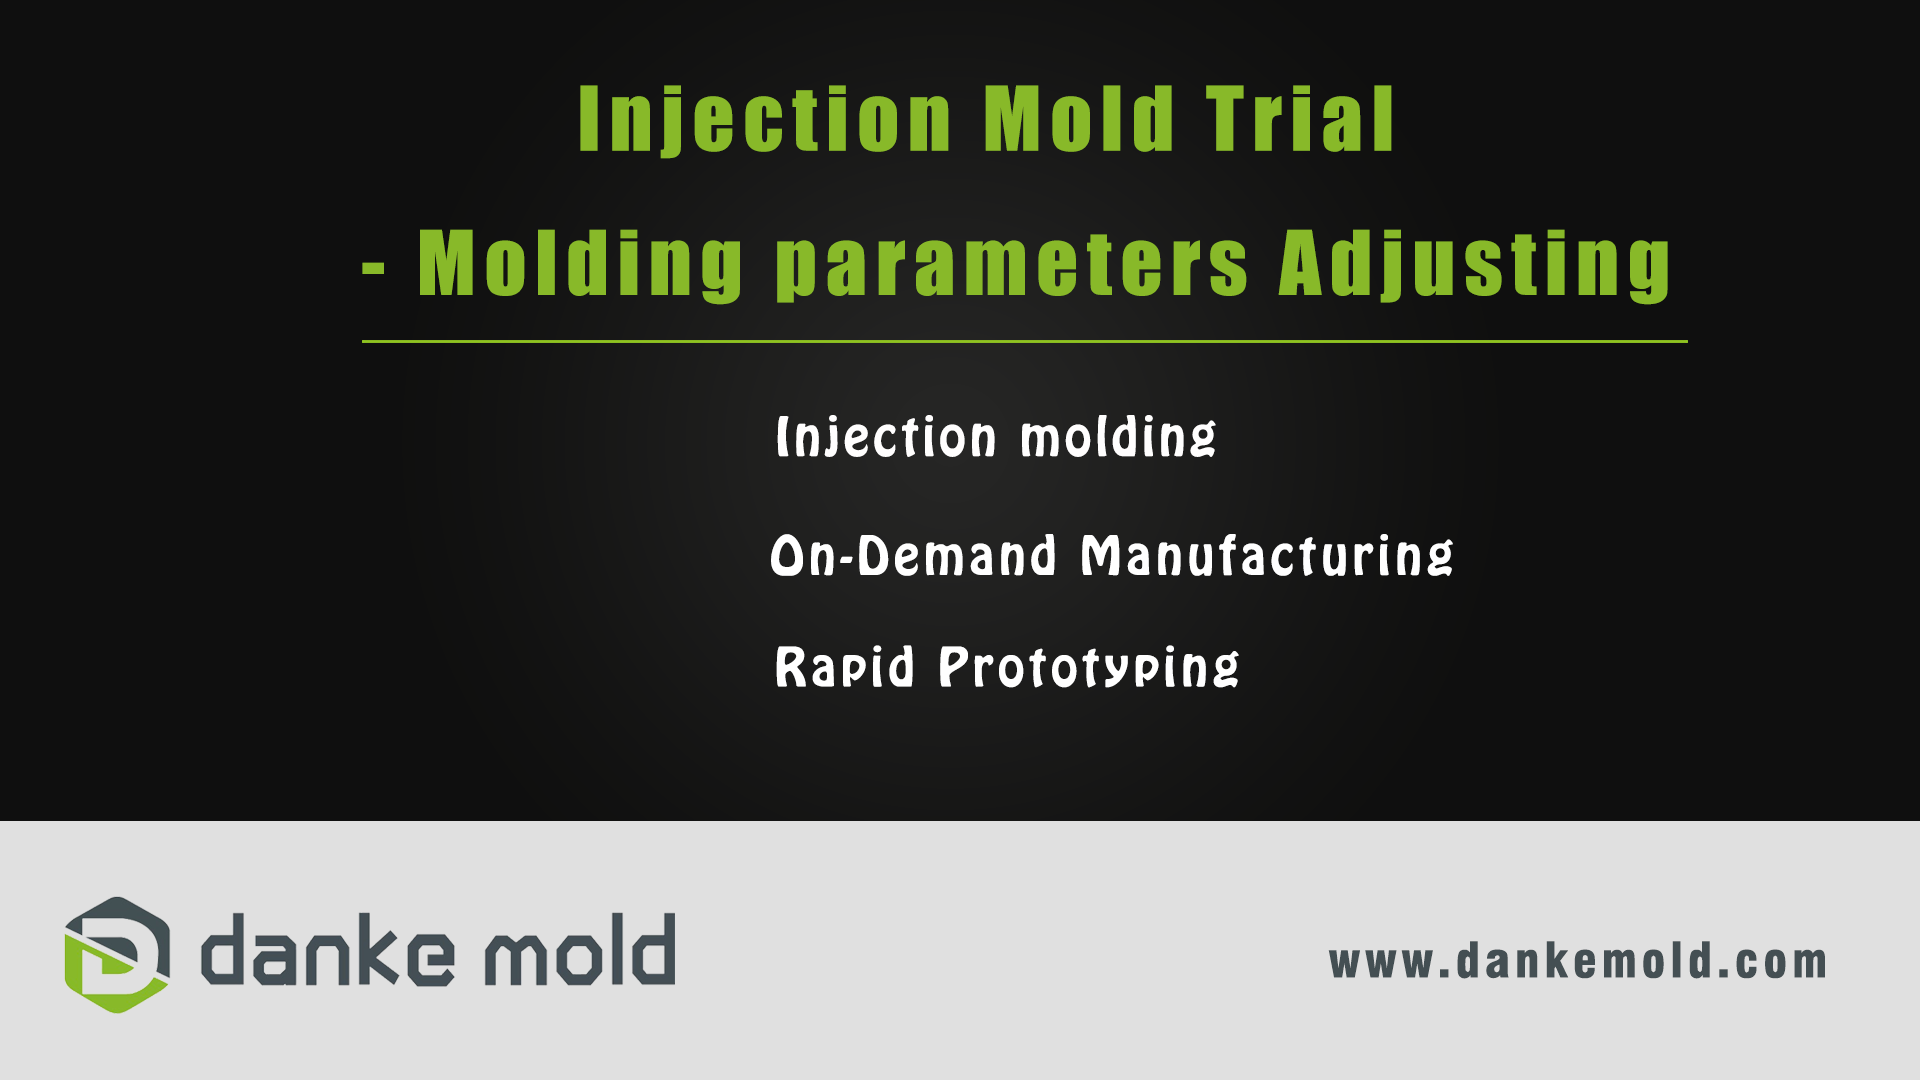 On-demand manufacturing_Injection Mold Trial_Molding Parameters Adjustment